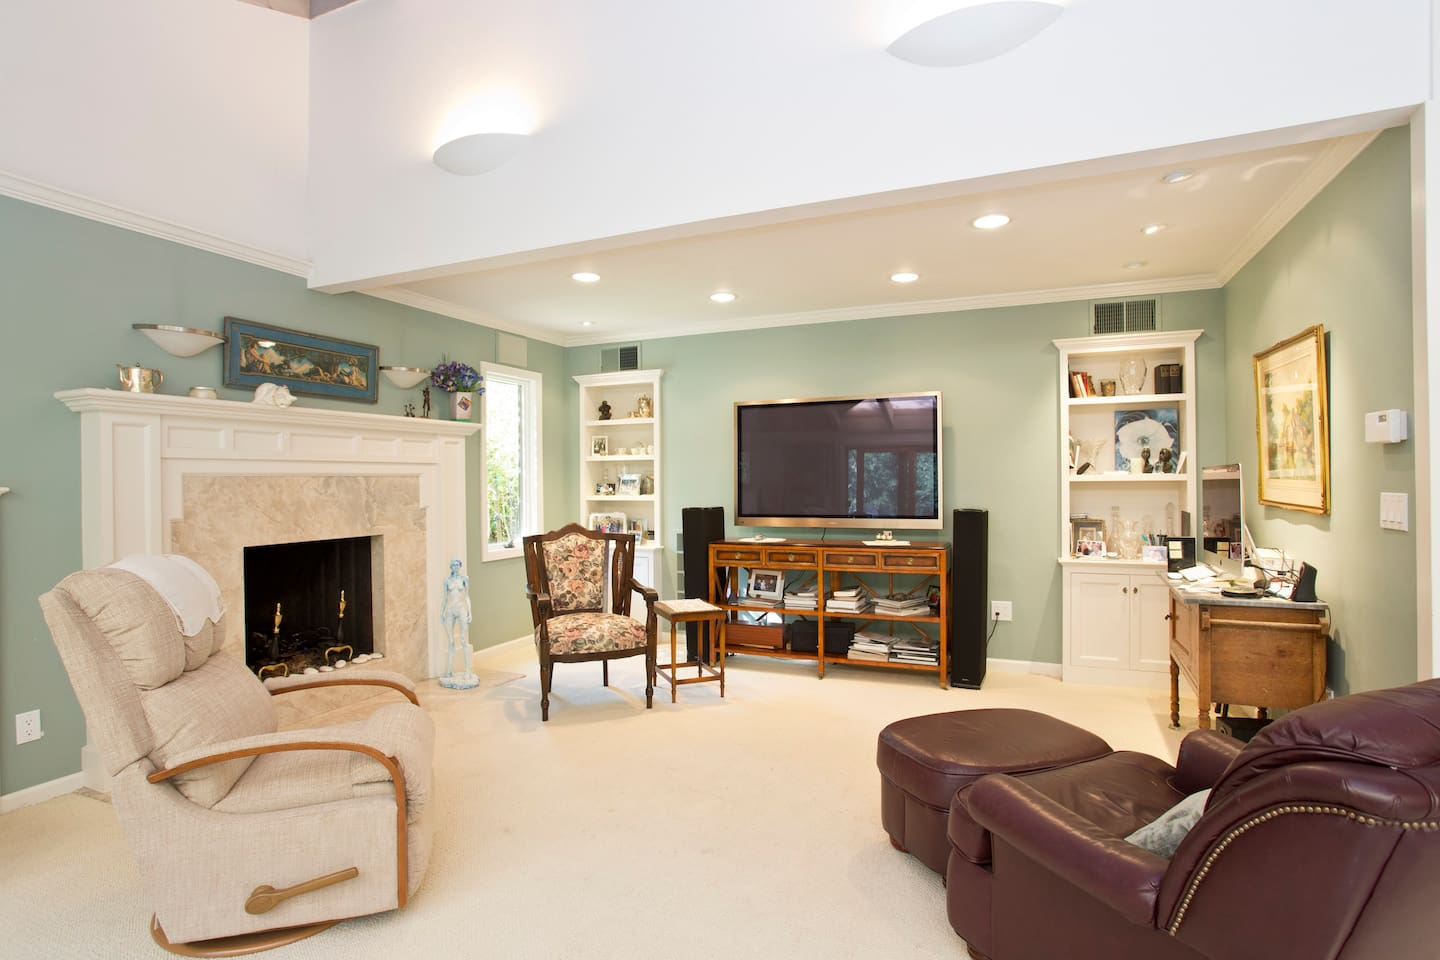 Living room with fireplace and large screen cable TV.  Room faces south so lots of sunshine